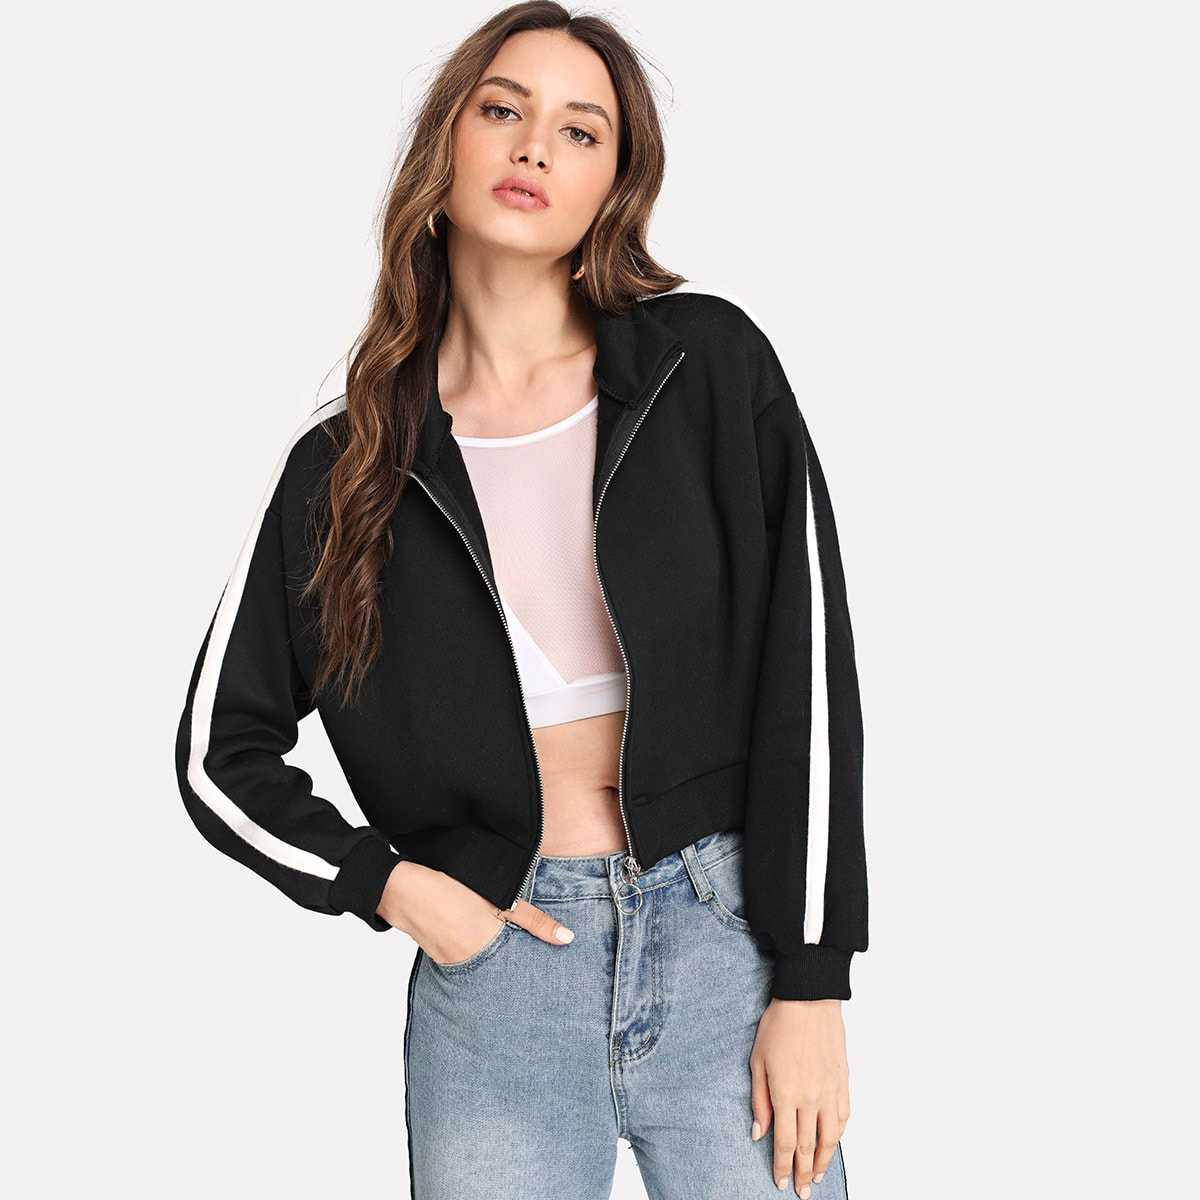 Zip Up Colorblock Jacket in Black by ROMWE on GOOFASH